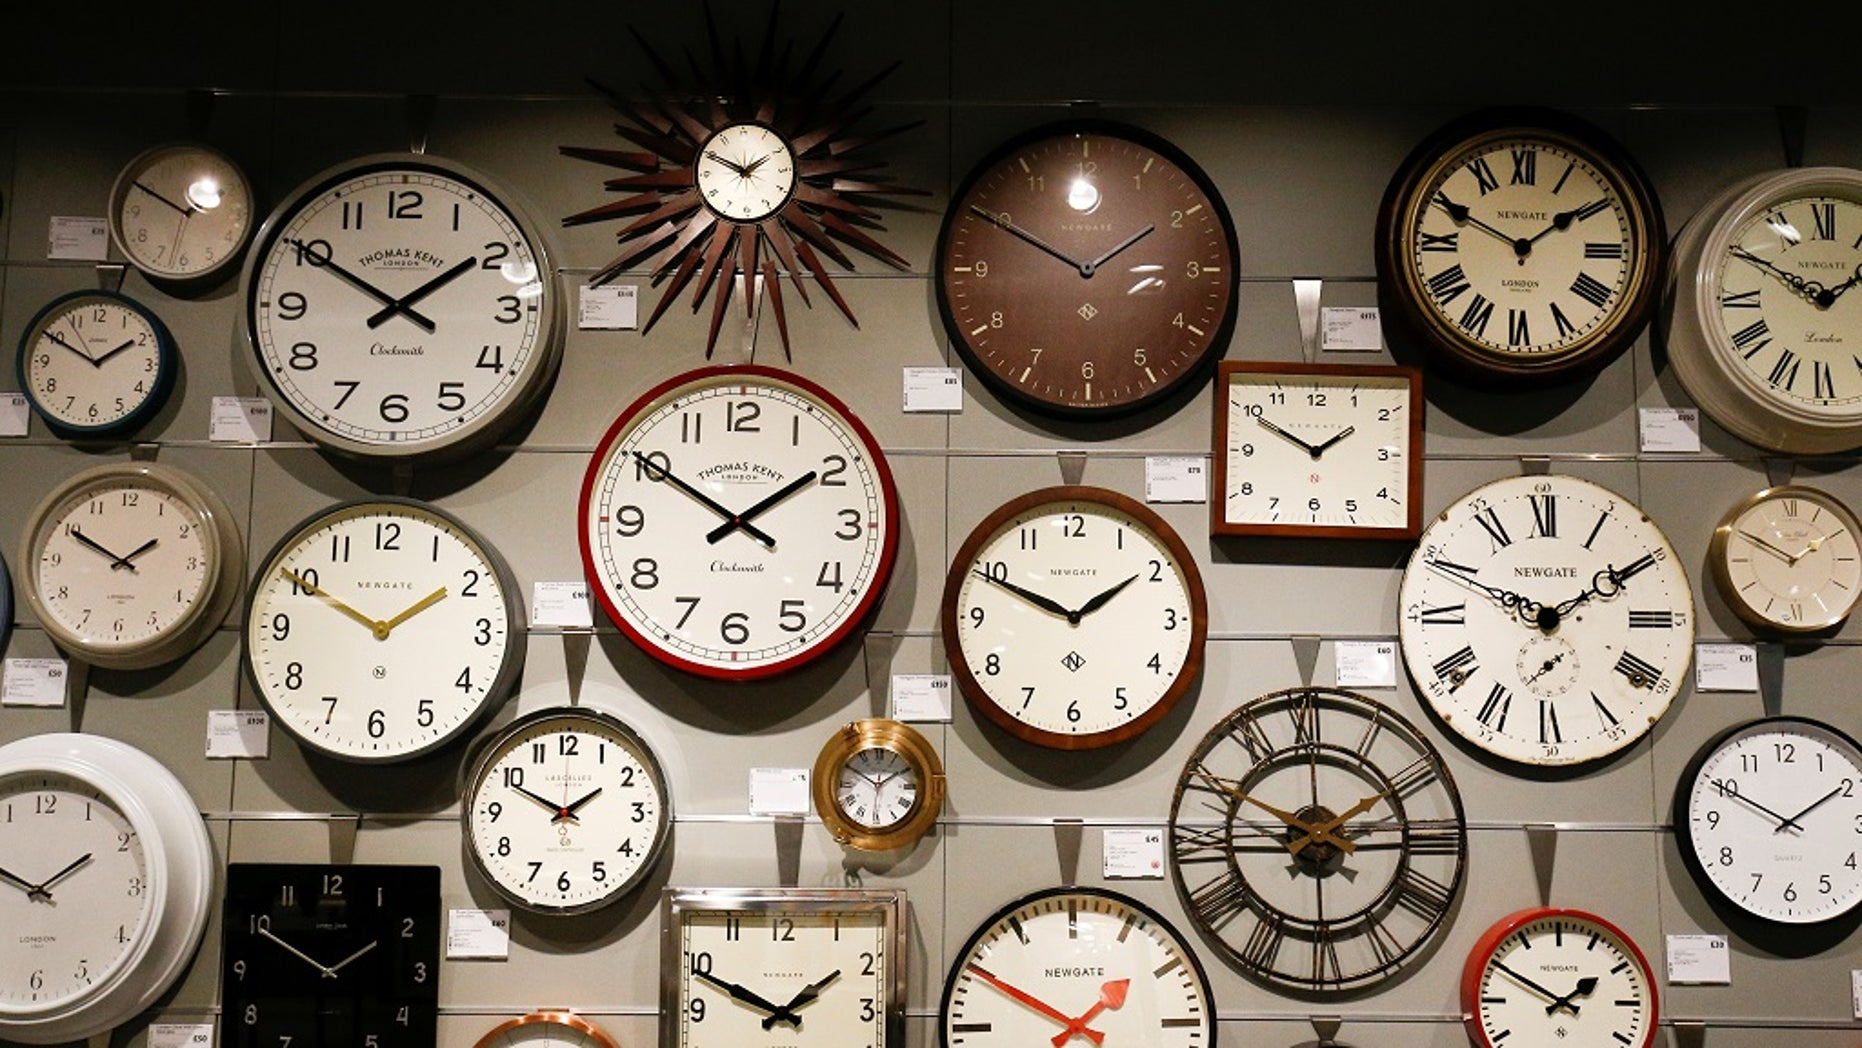 Clocks are displayed inside the new John Lewis store at the Westfield shopping centre in White City, London, Britain, March 19, 2018.